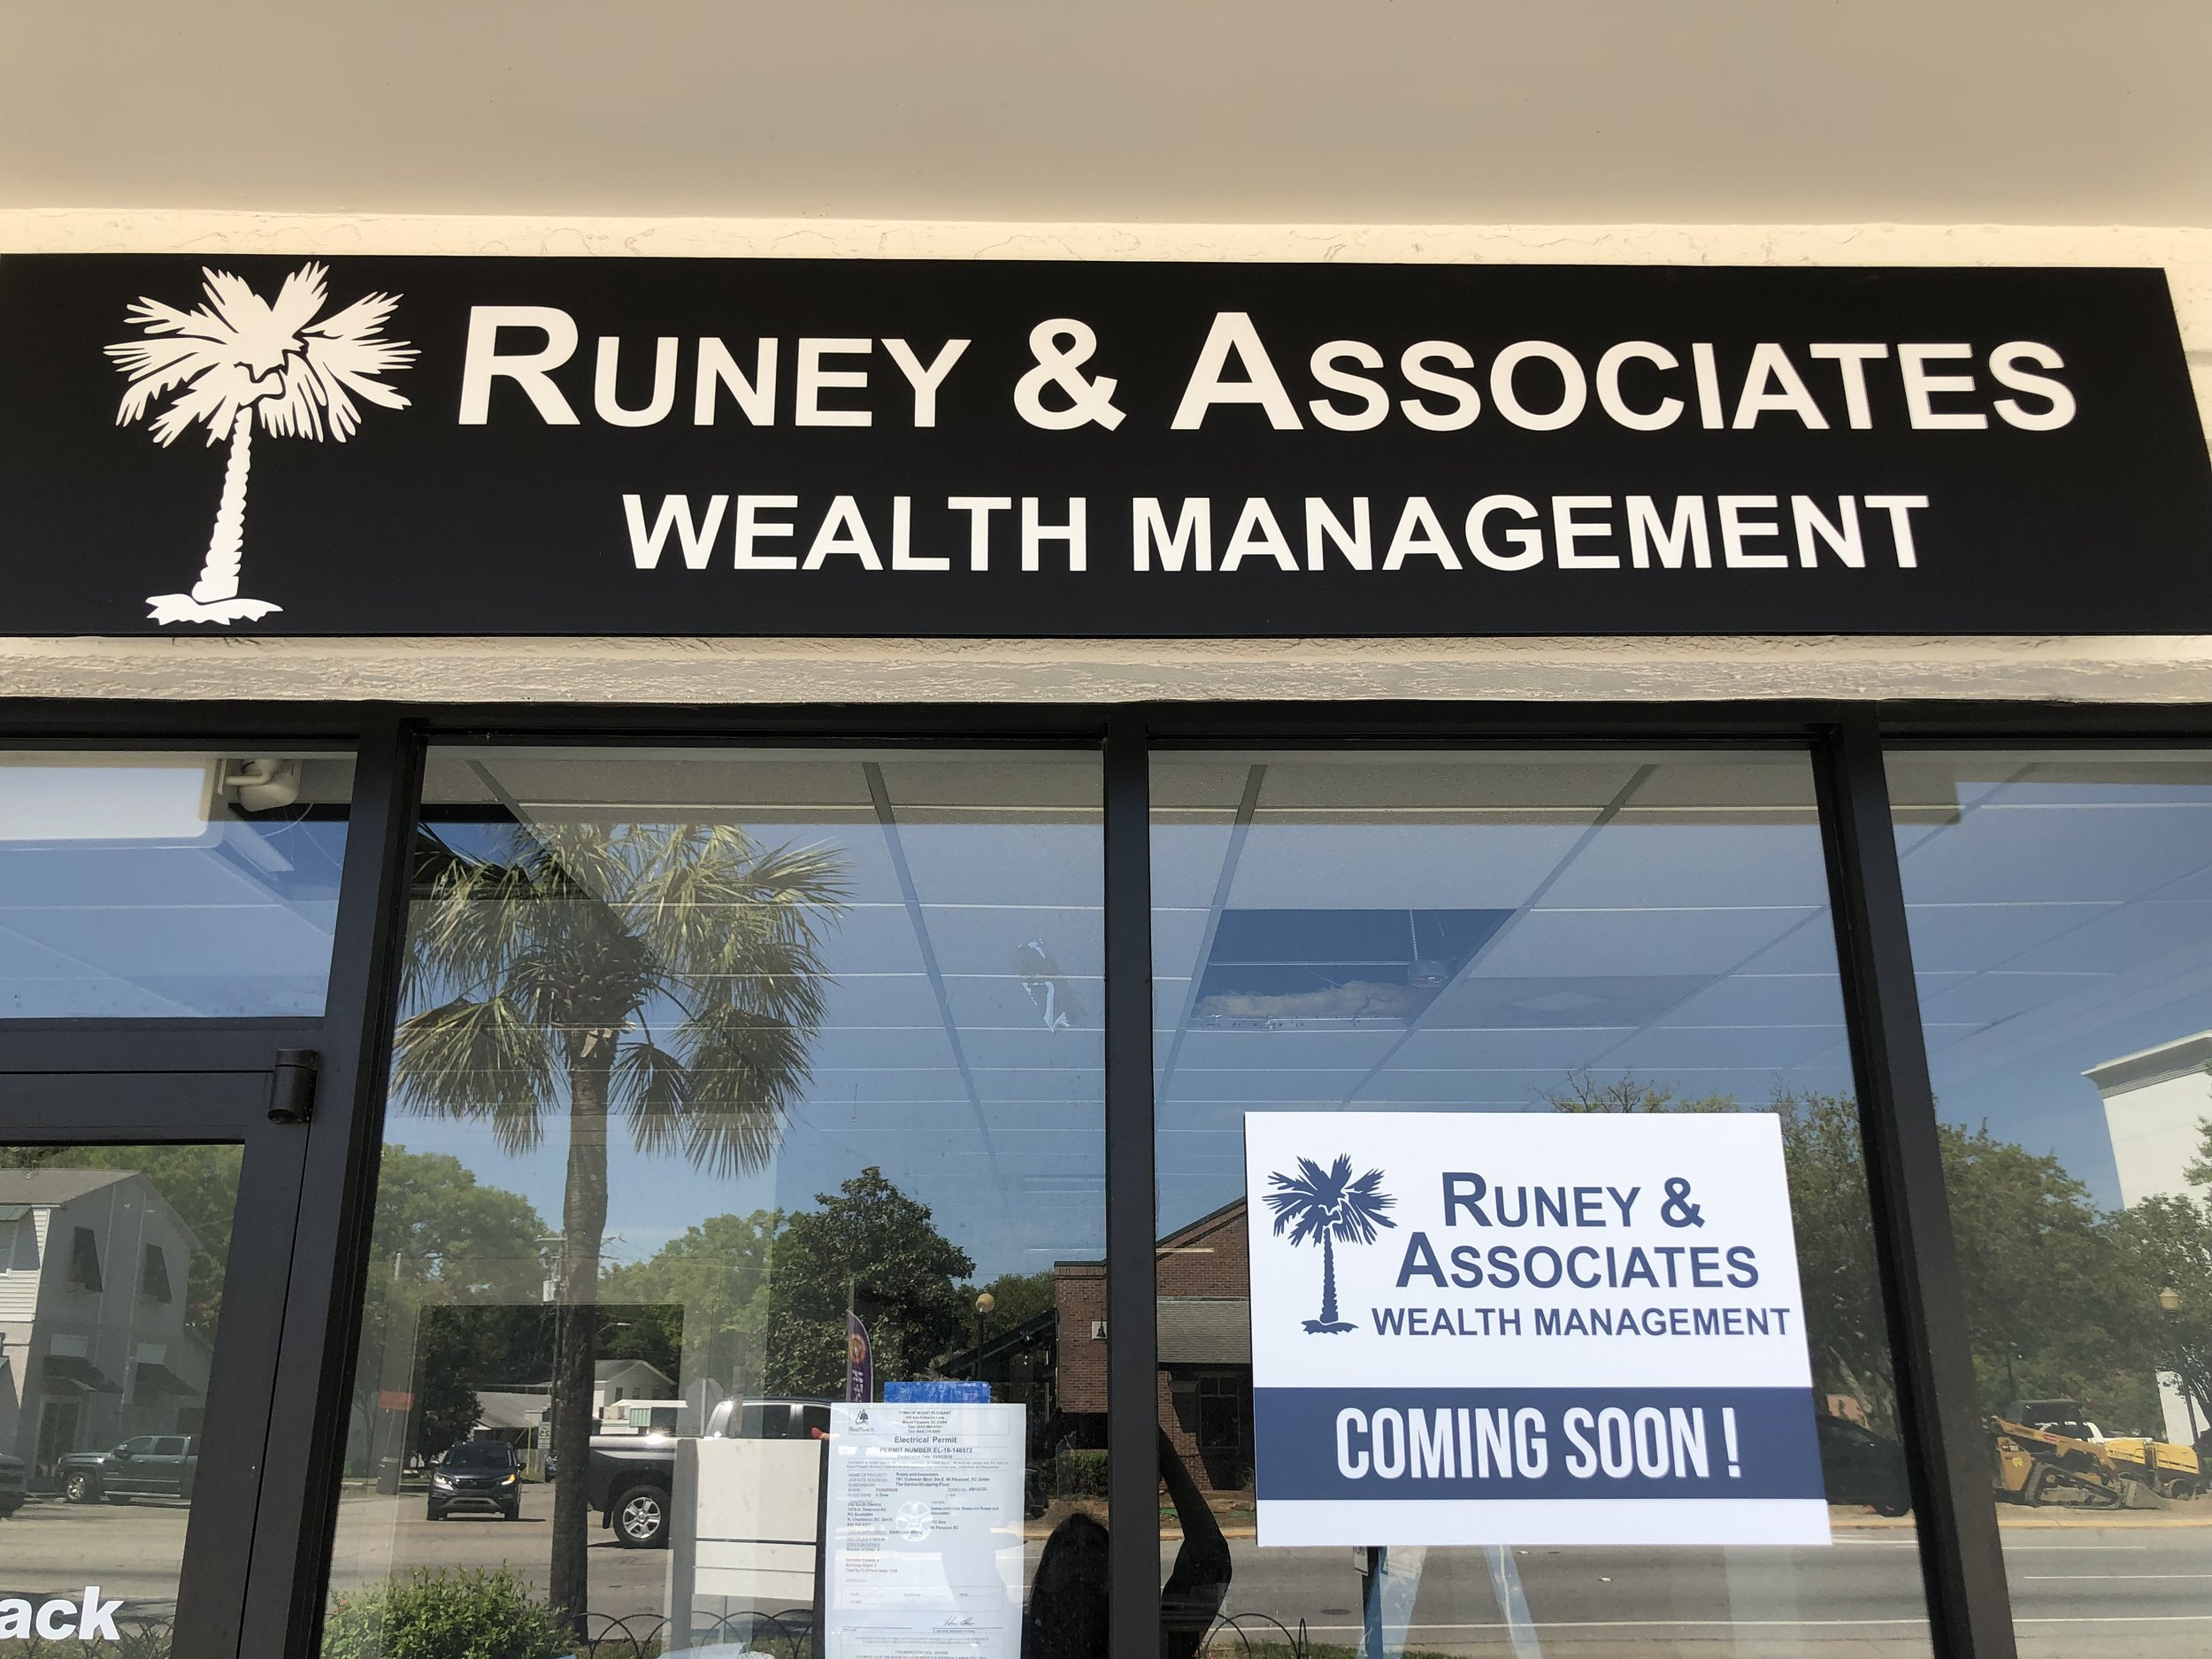 Front Entrance to Runey & Associates Wealth Management!